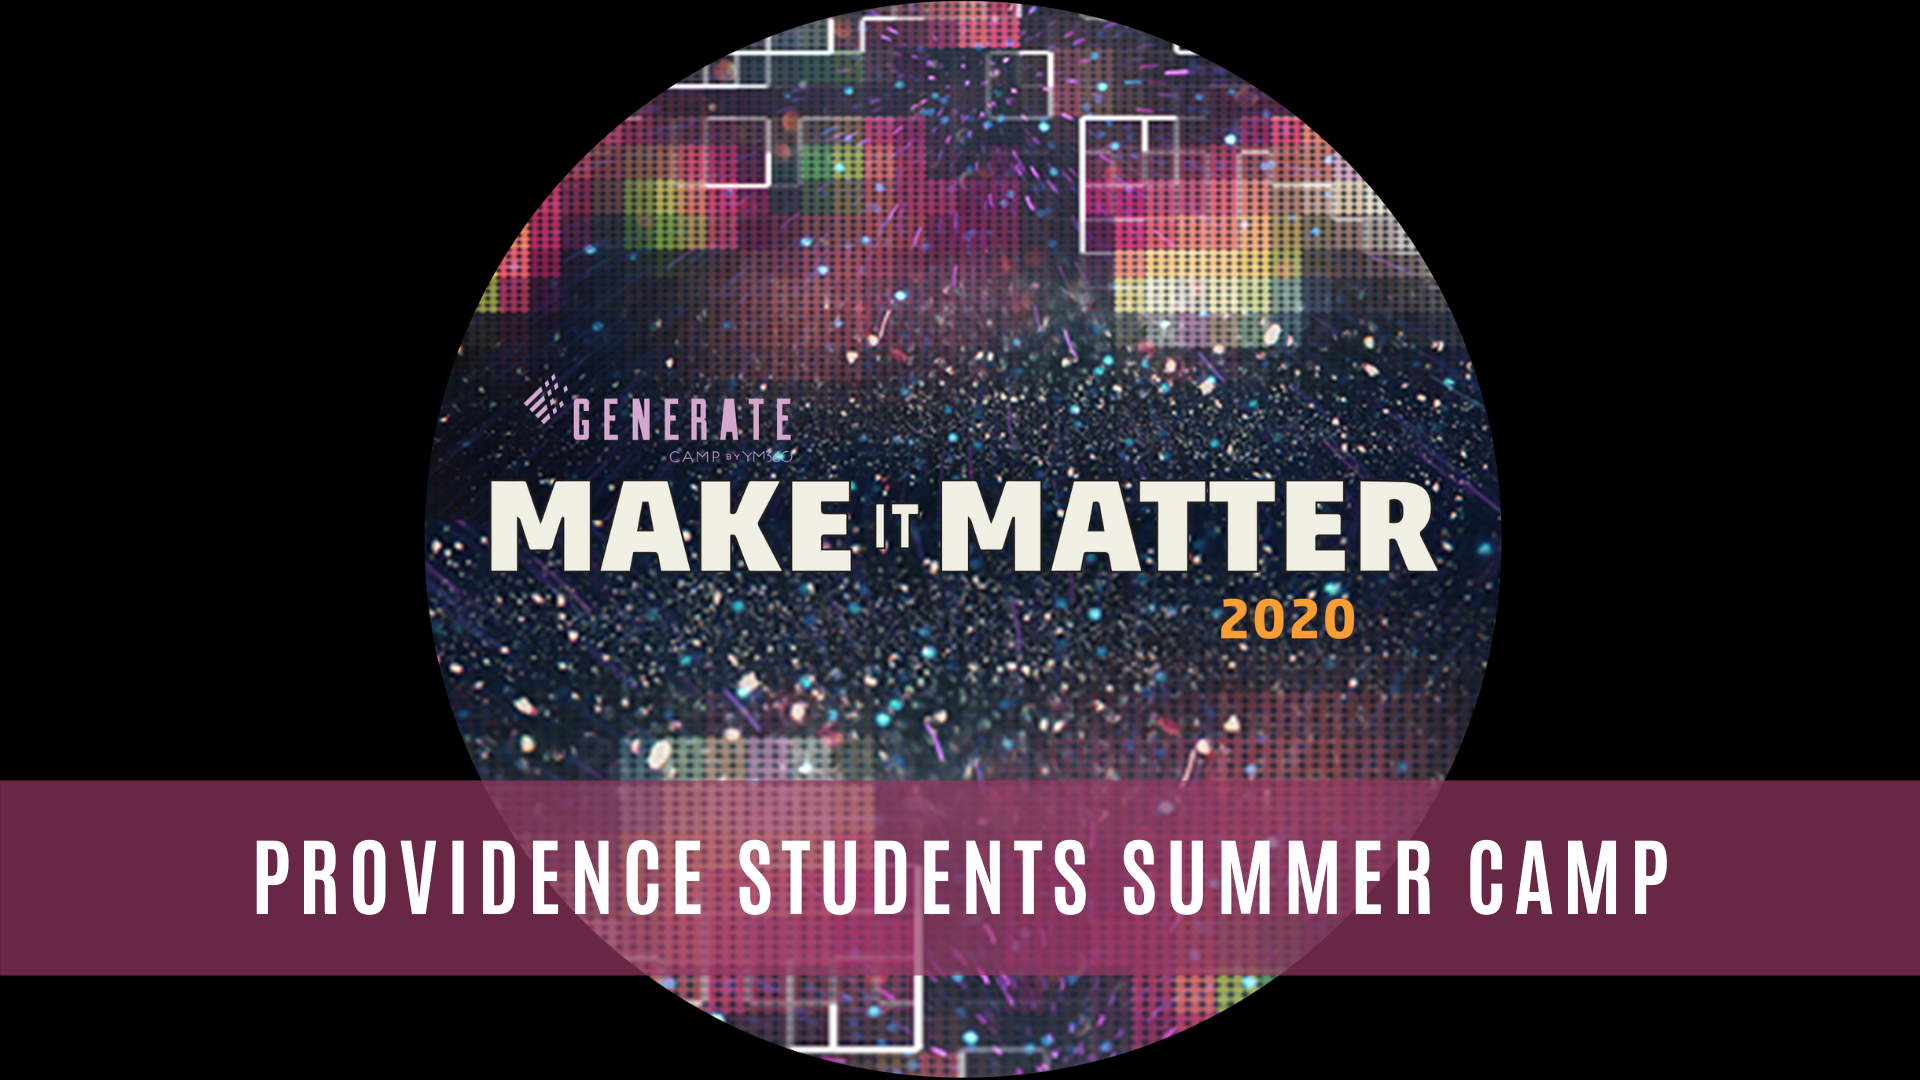 Providence Students Summer Camp 2020 image